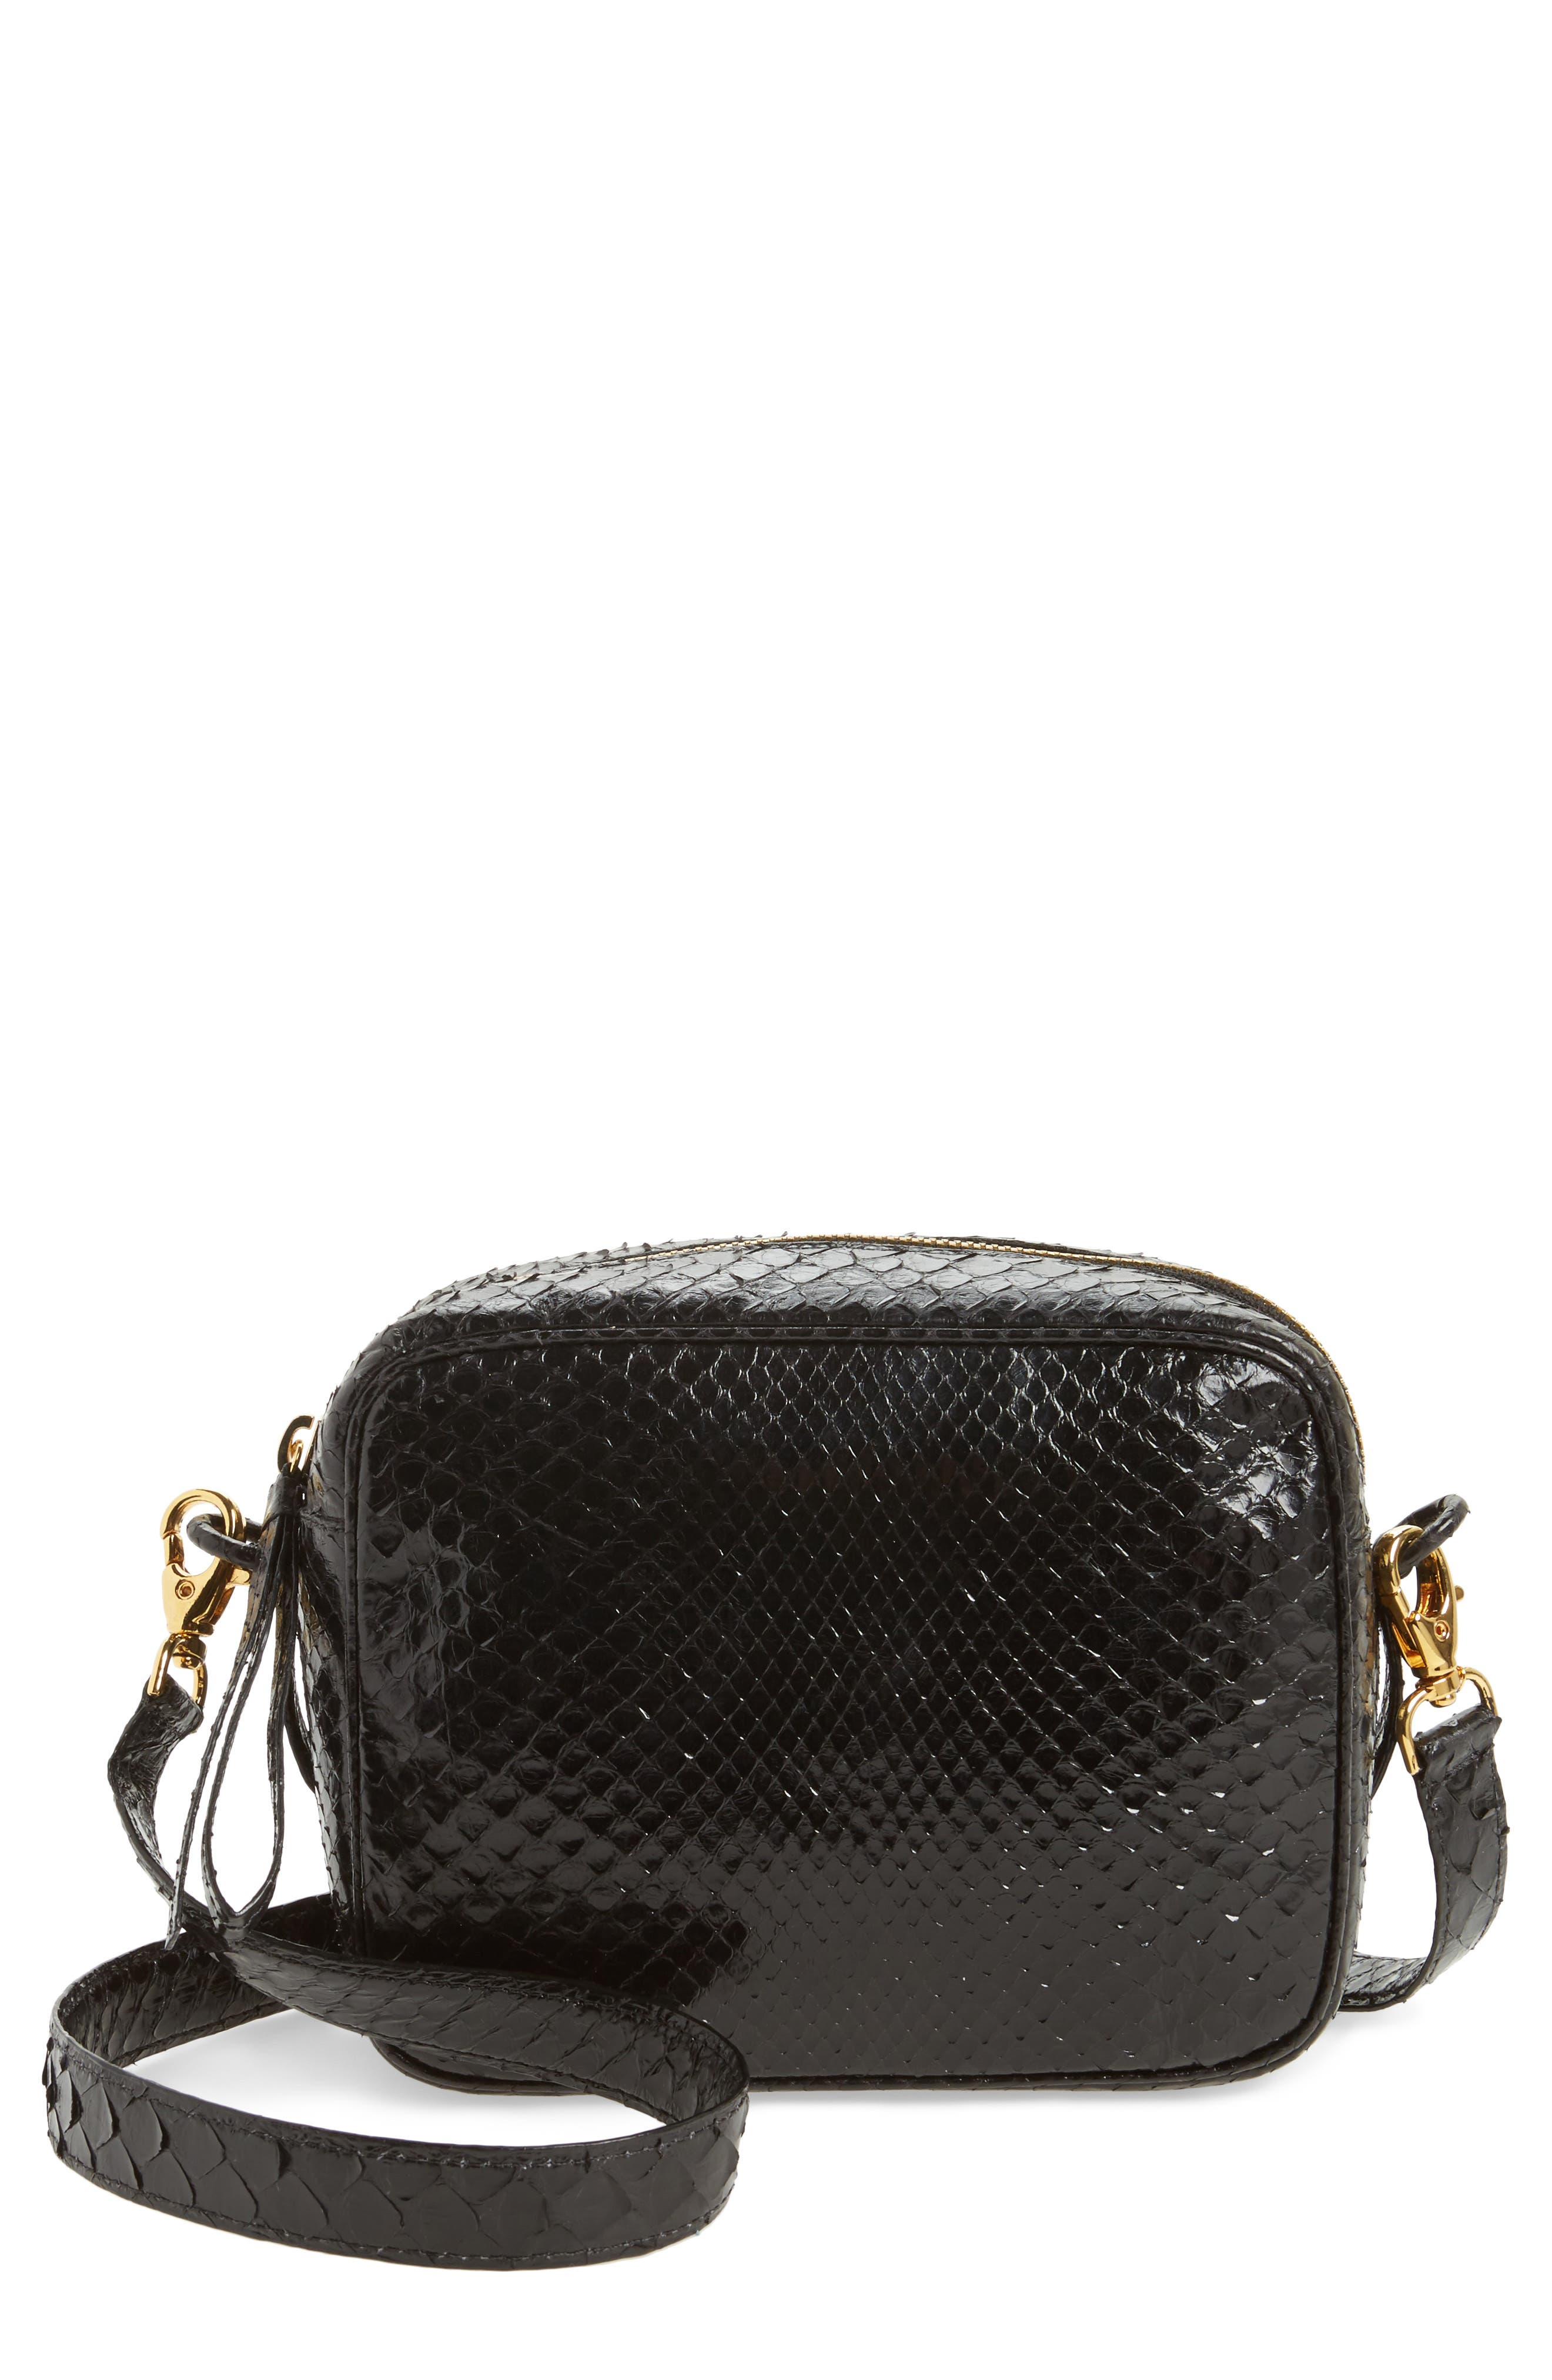 Genuine Python Shoulder Bag,                             Main thumbnail 1, color,                             001